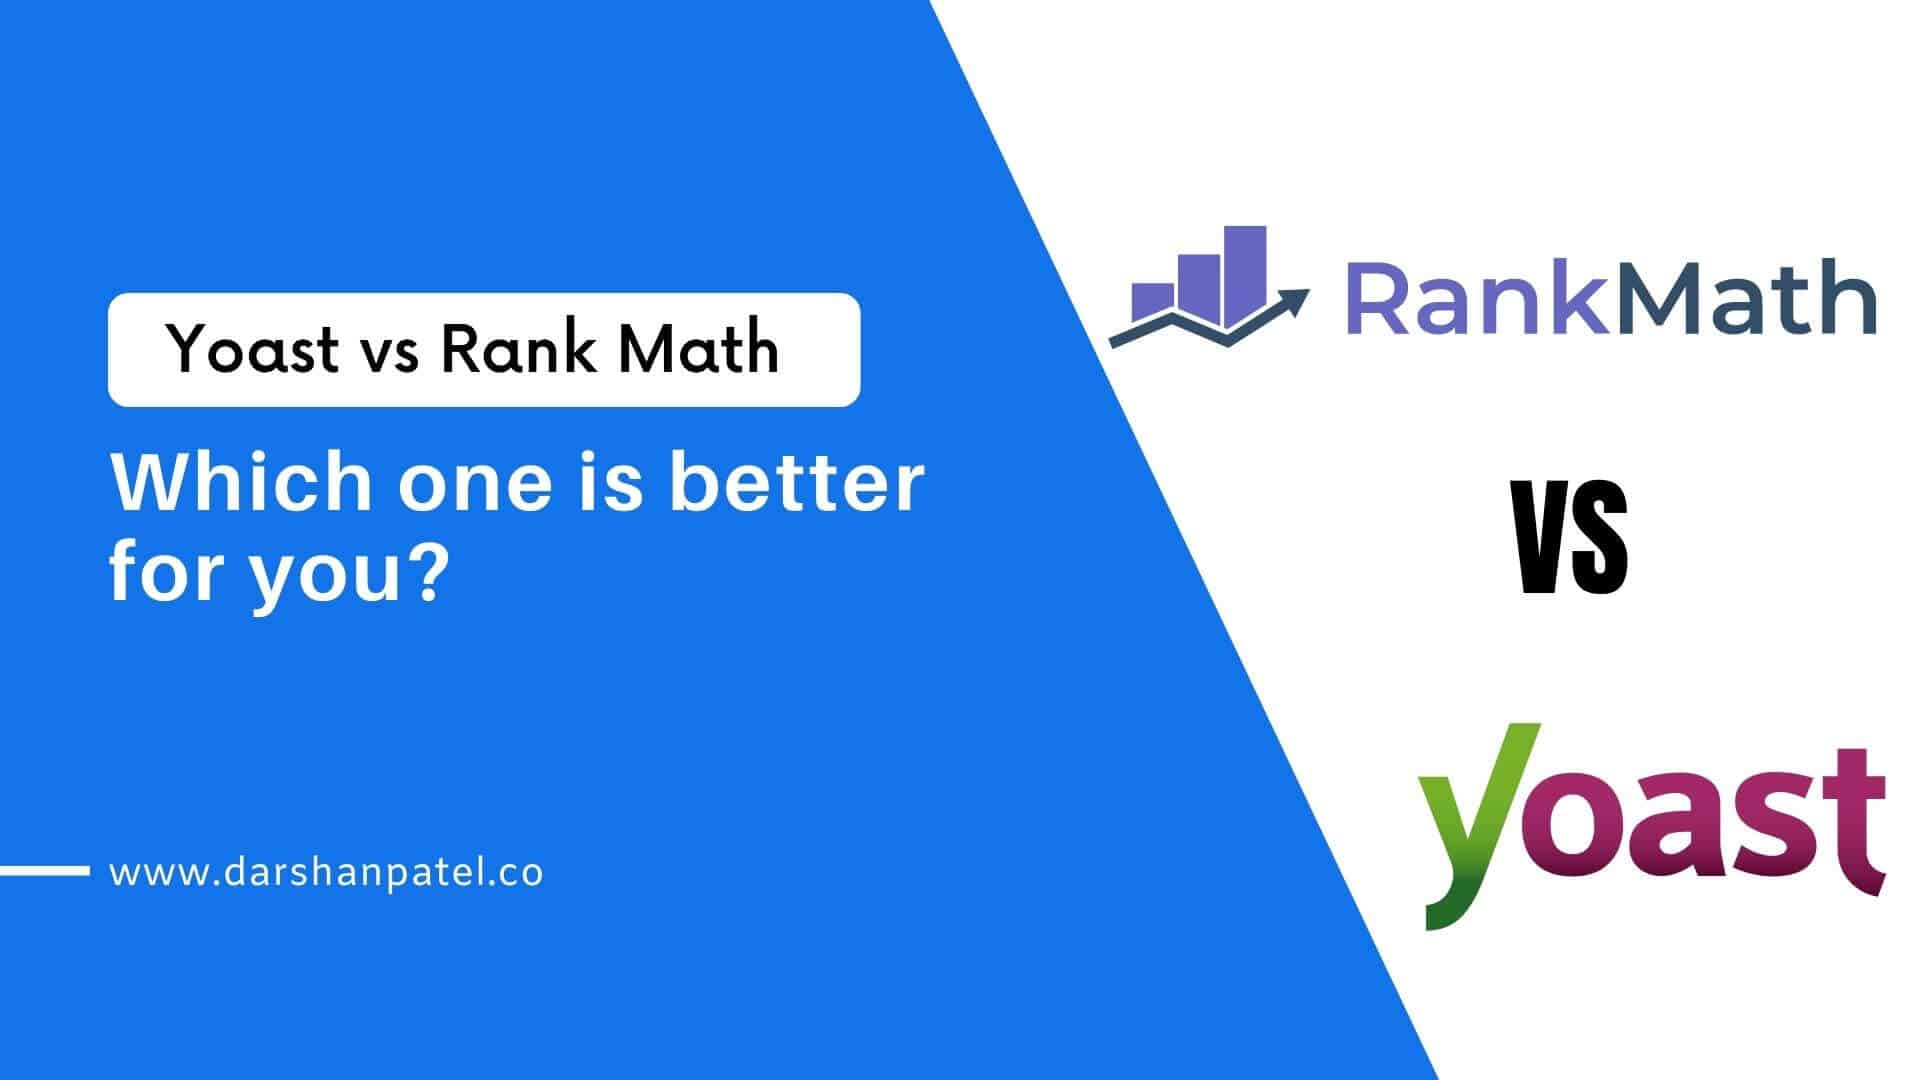 Yoast vs Rank Math - Which one is better for you?